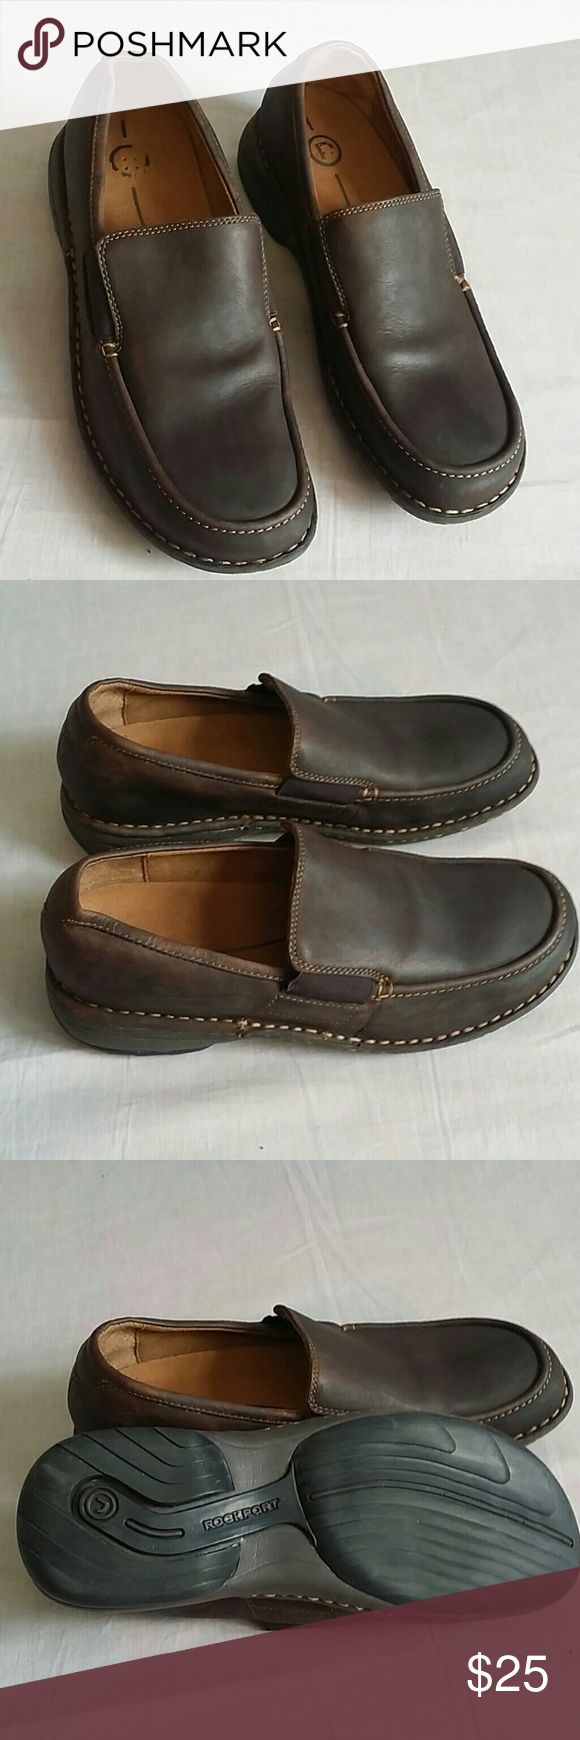 Rockport Shoes Brown 7.5 M Leather Slip-on Item is in a good condition, NO PETS AND SMOKE FREE HOME. Rockport Shoes Flats & Loafers